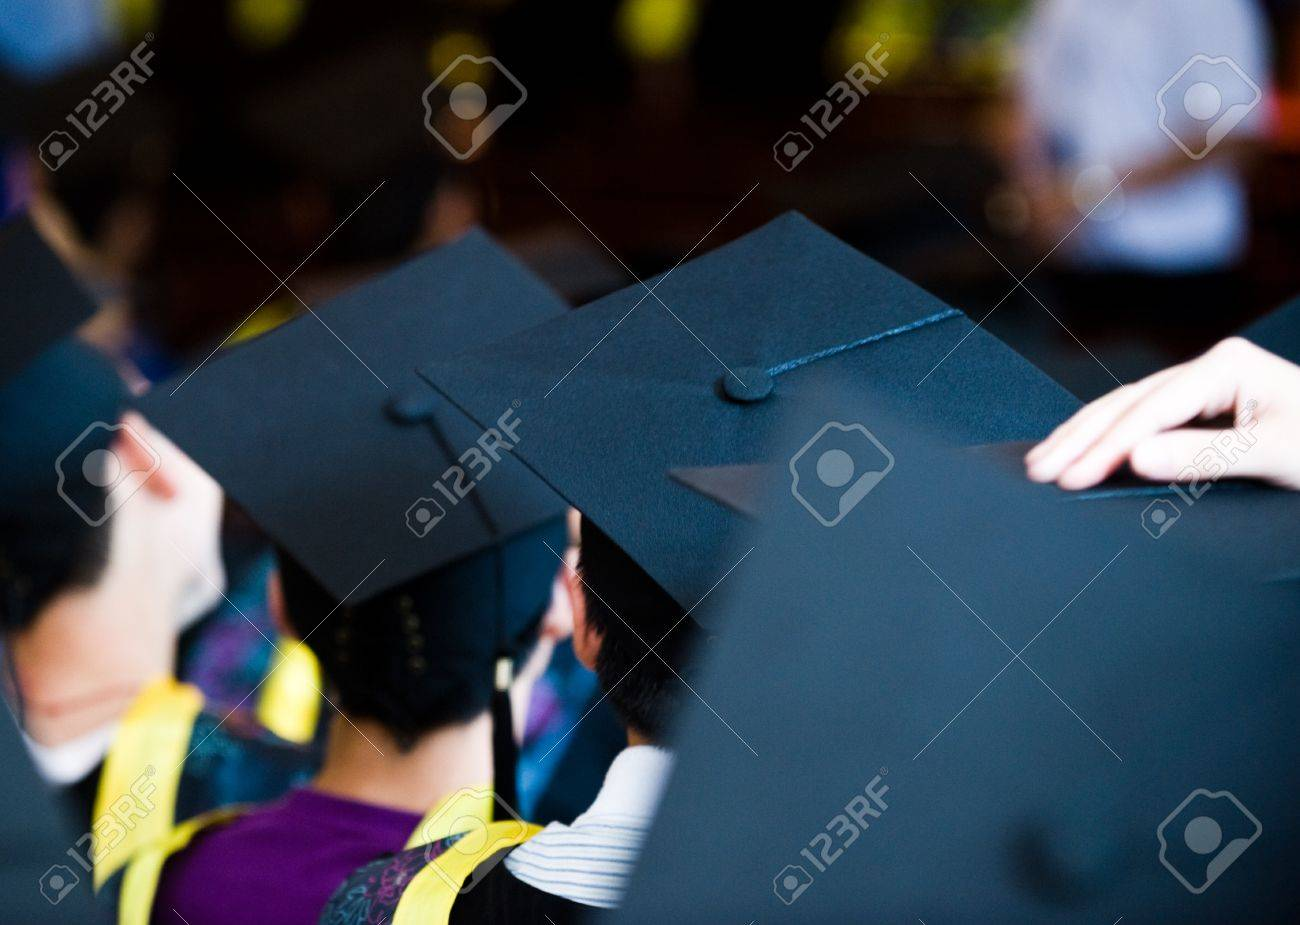 Shot of graduation caps during commencement. Stock Photo - 13448113